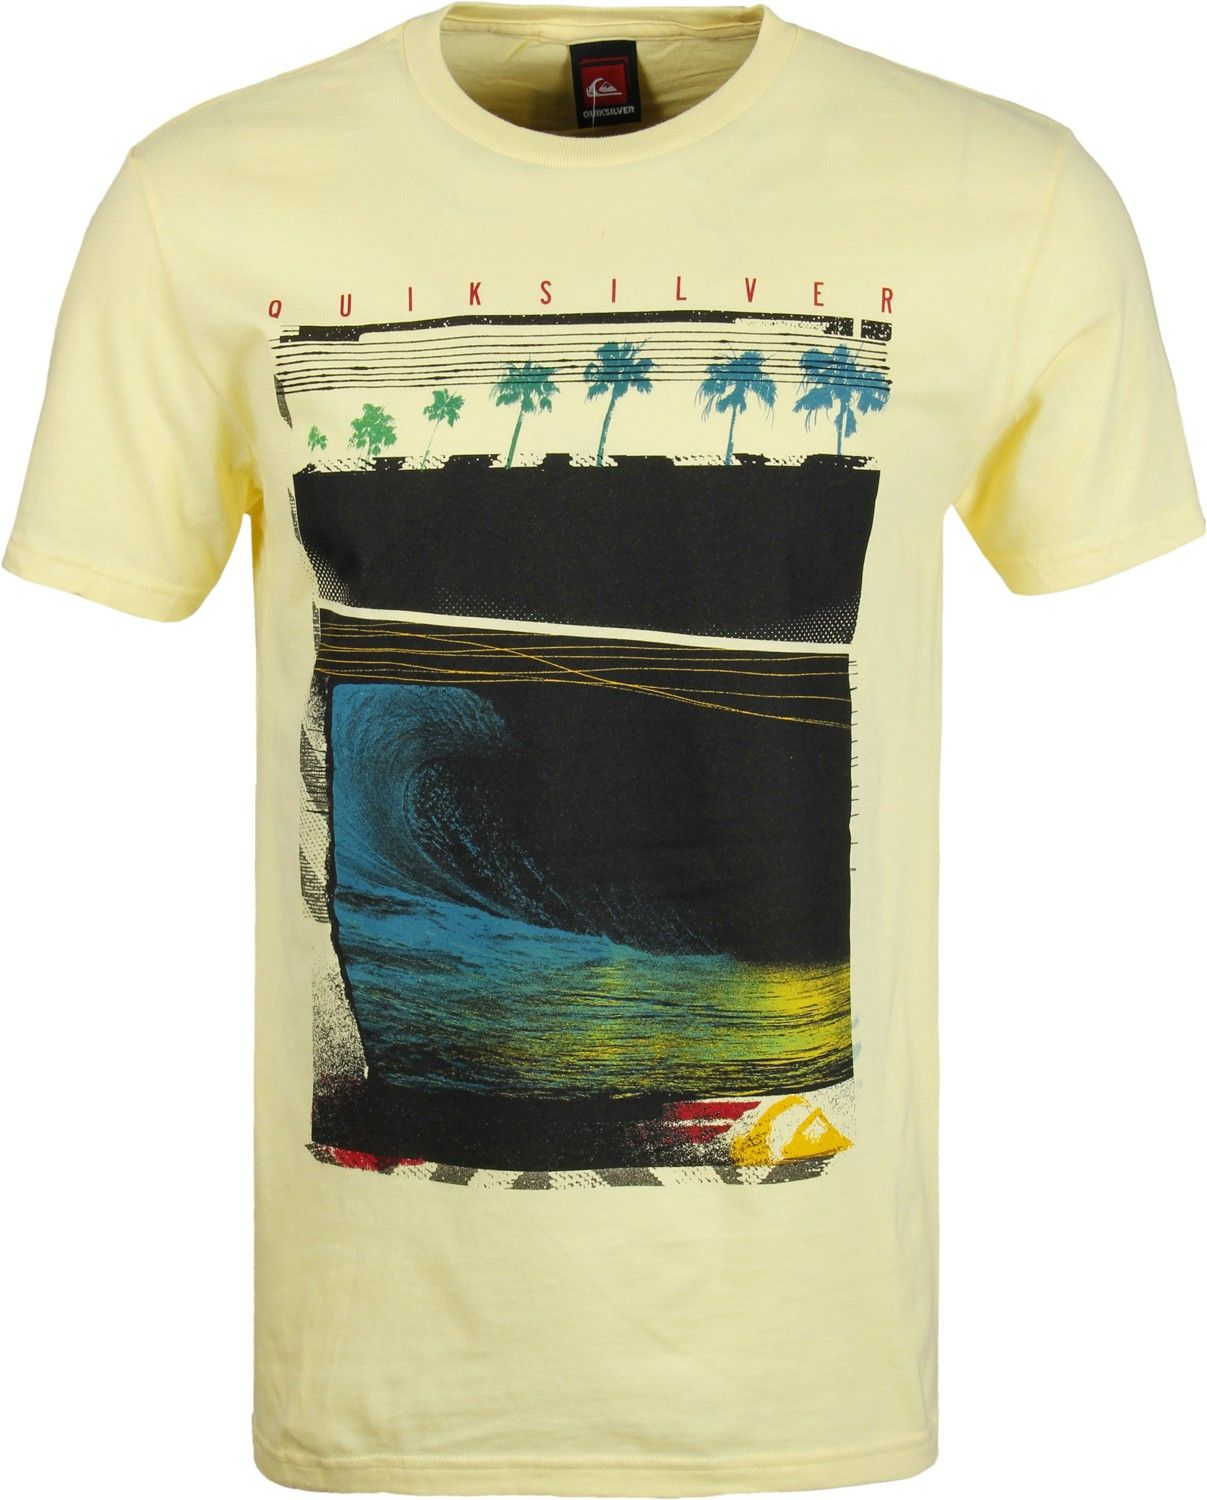 Quiksilver plain black t shirt - Quiksilver Night Swim T Shirt Light Yellow Men S Clothing Shirts T